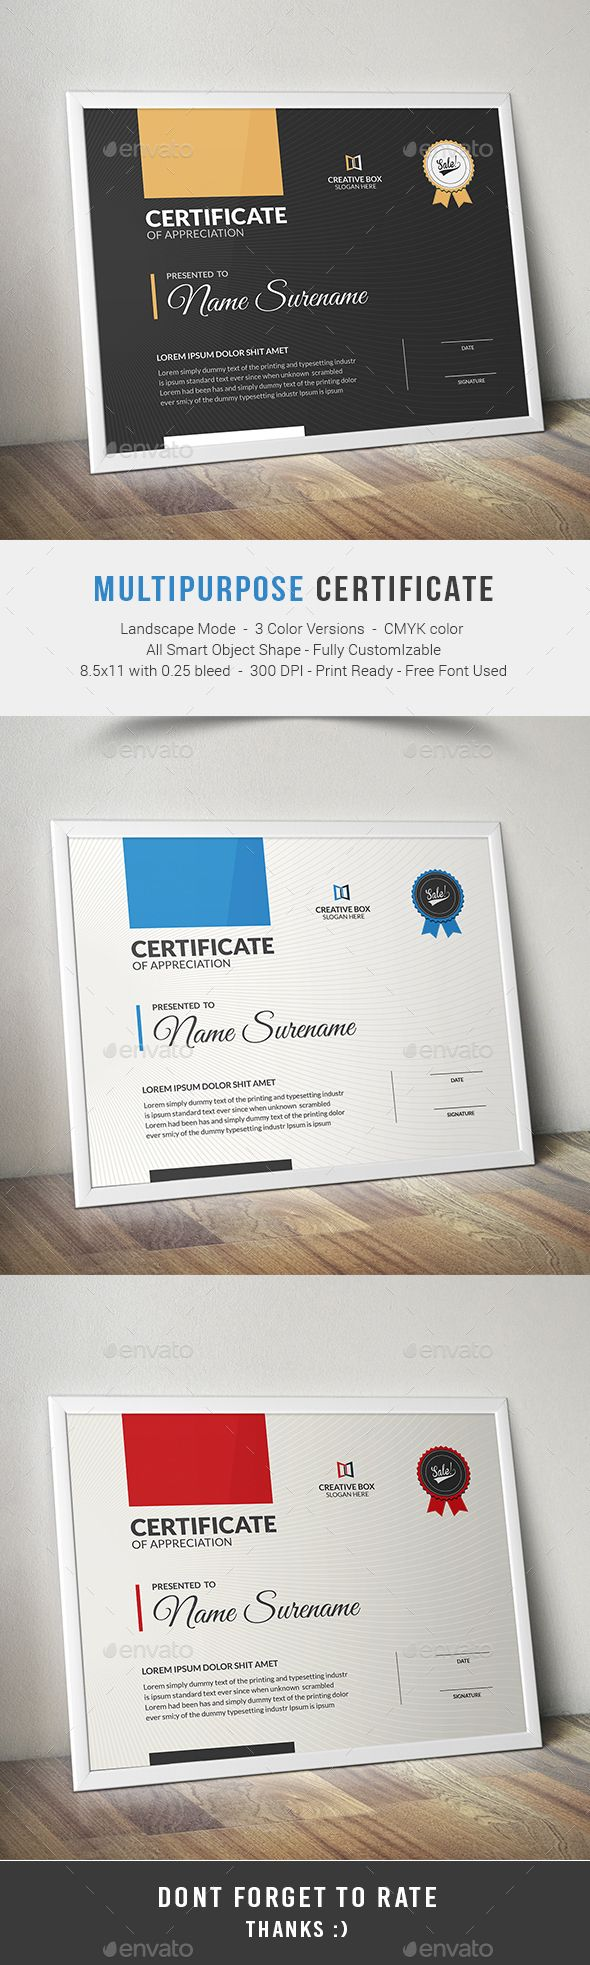 155 Gift Certificate Templates Free Sample Example Format Gym Gift